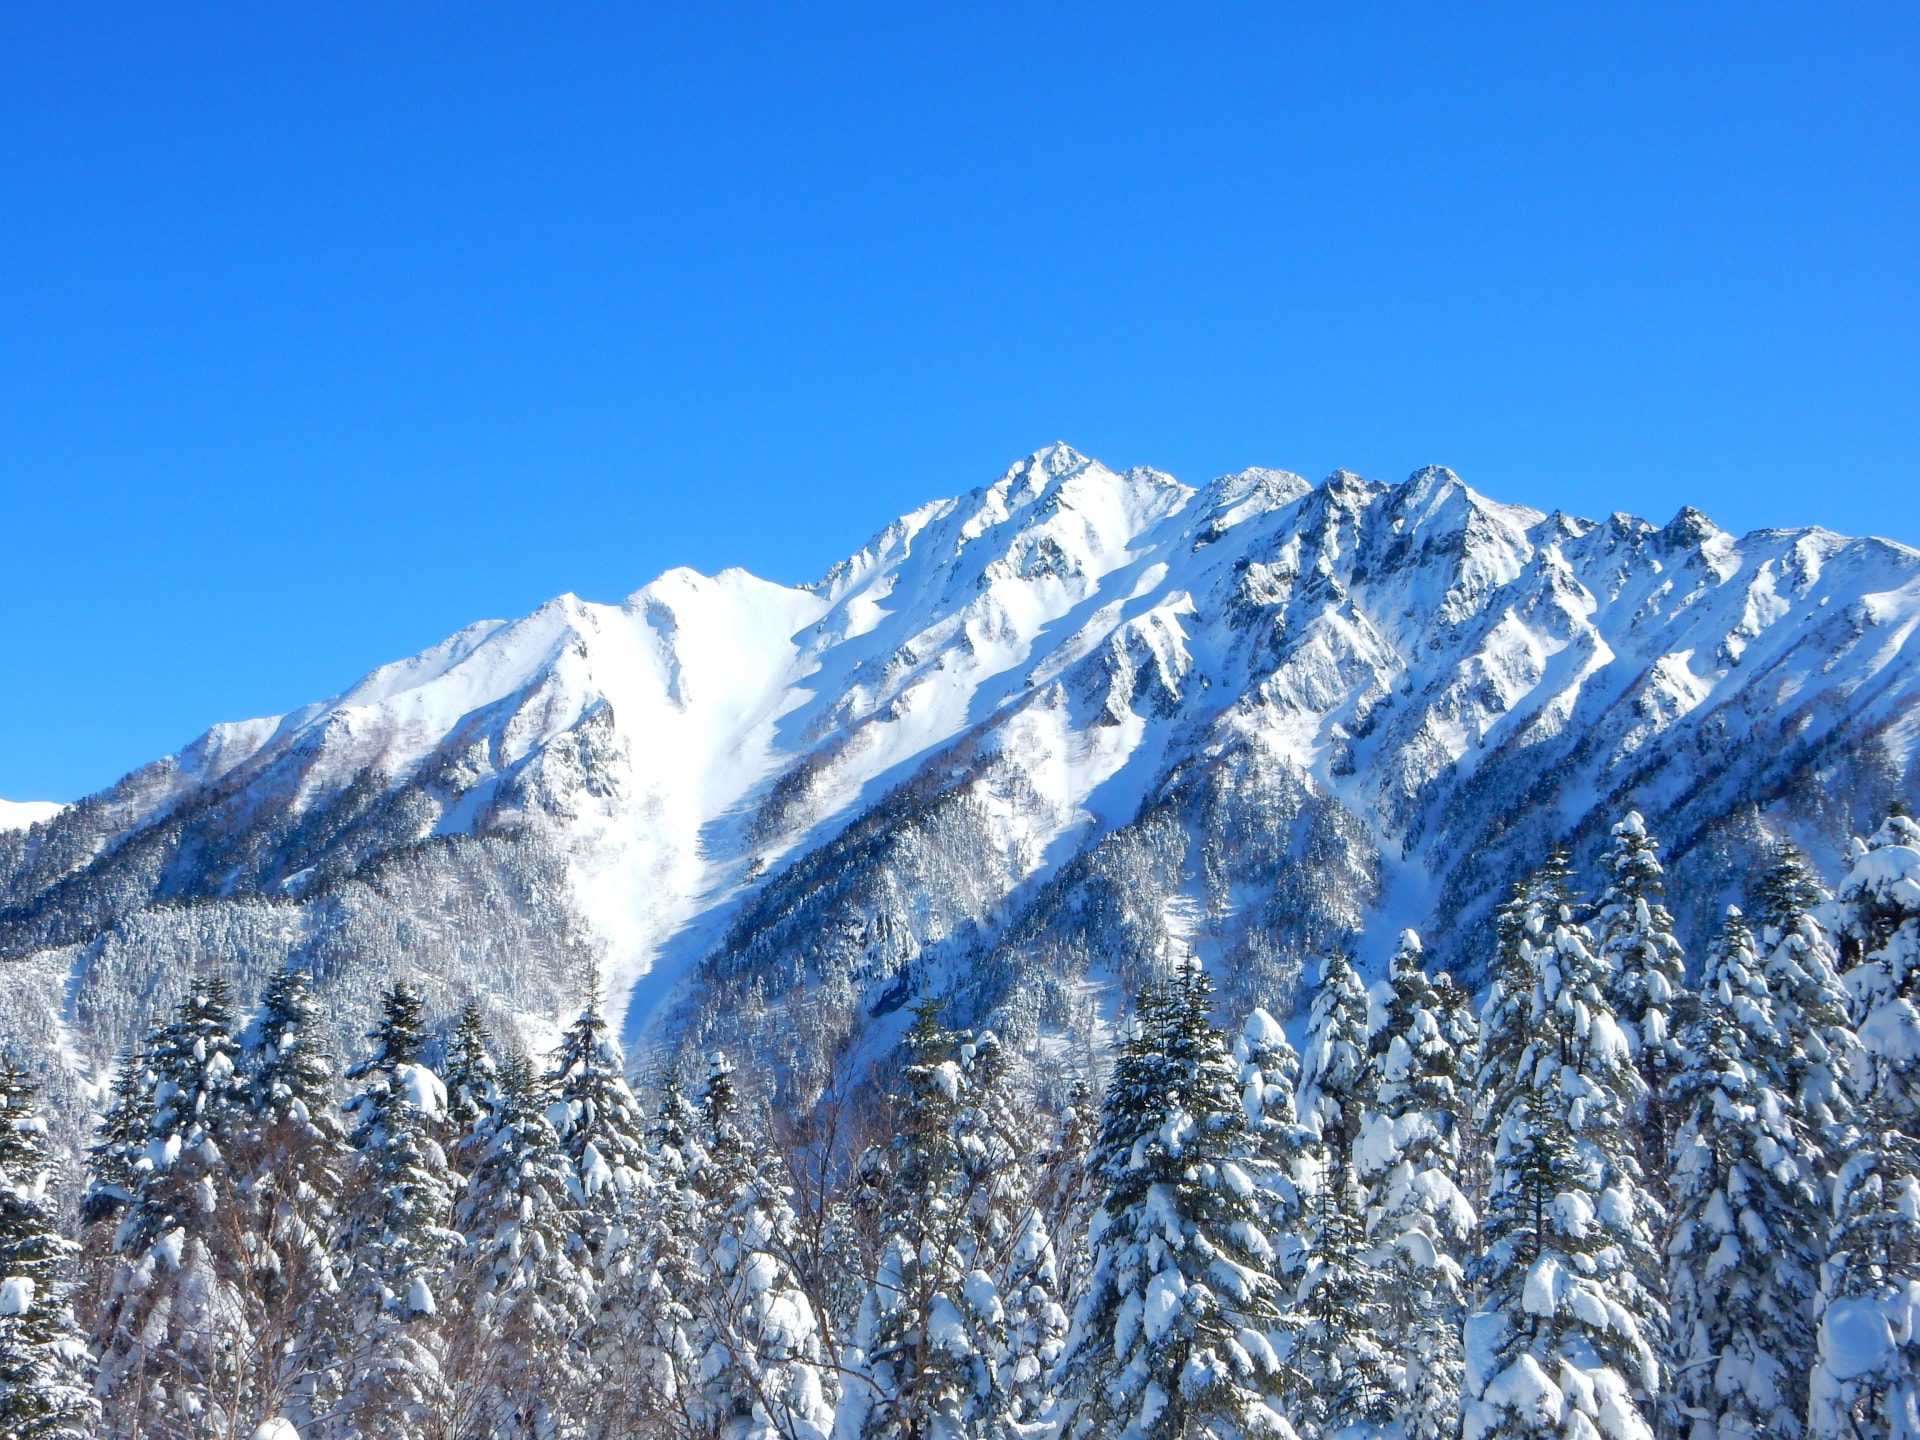 The Japan Alps in winter